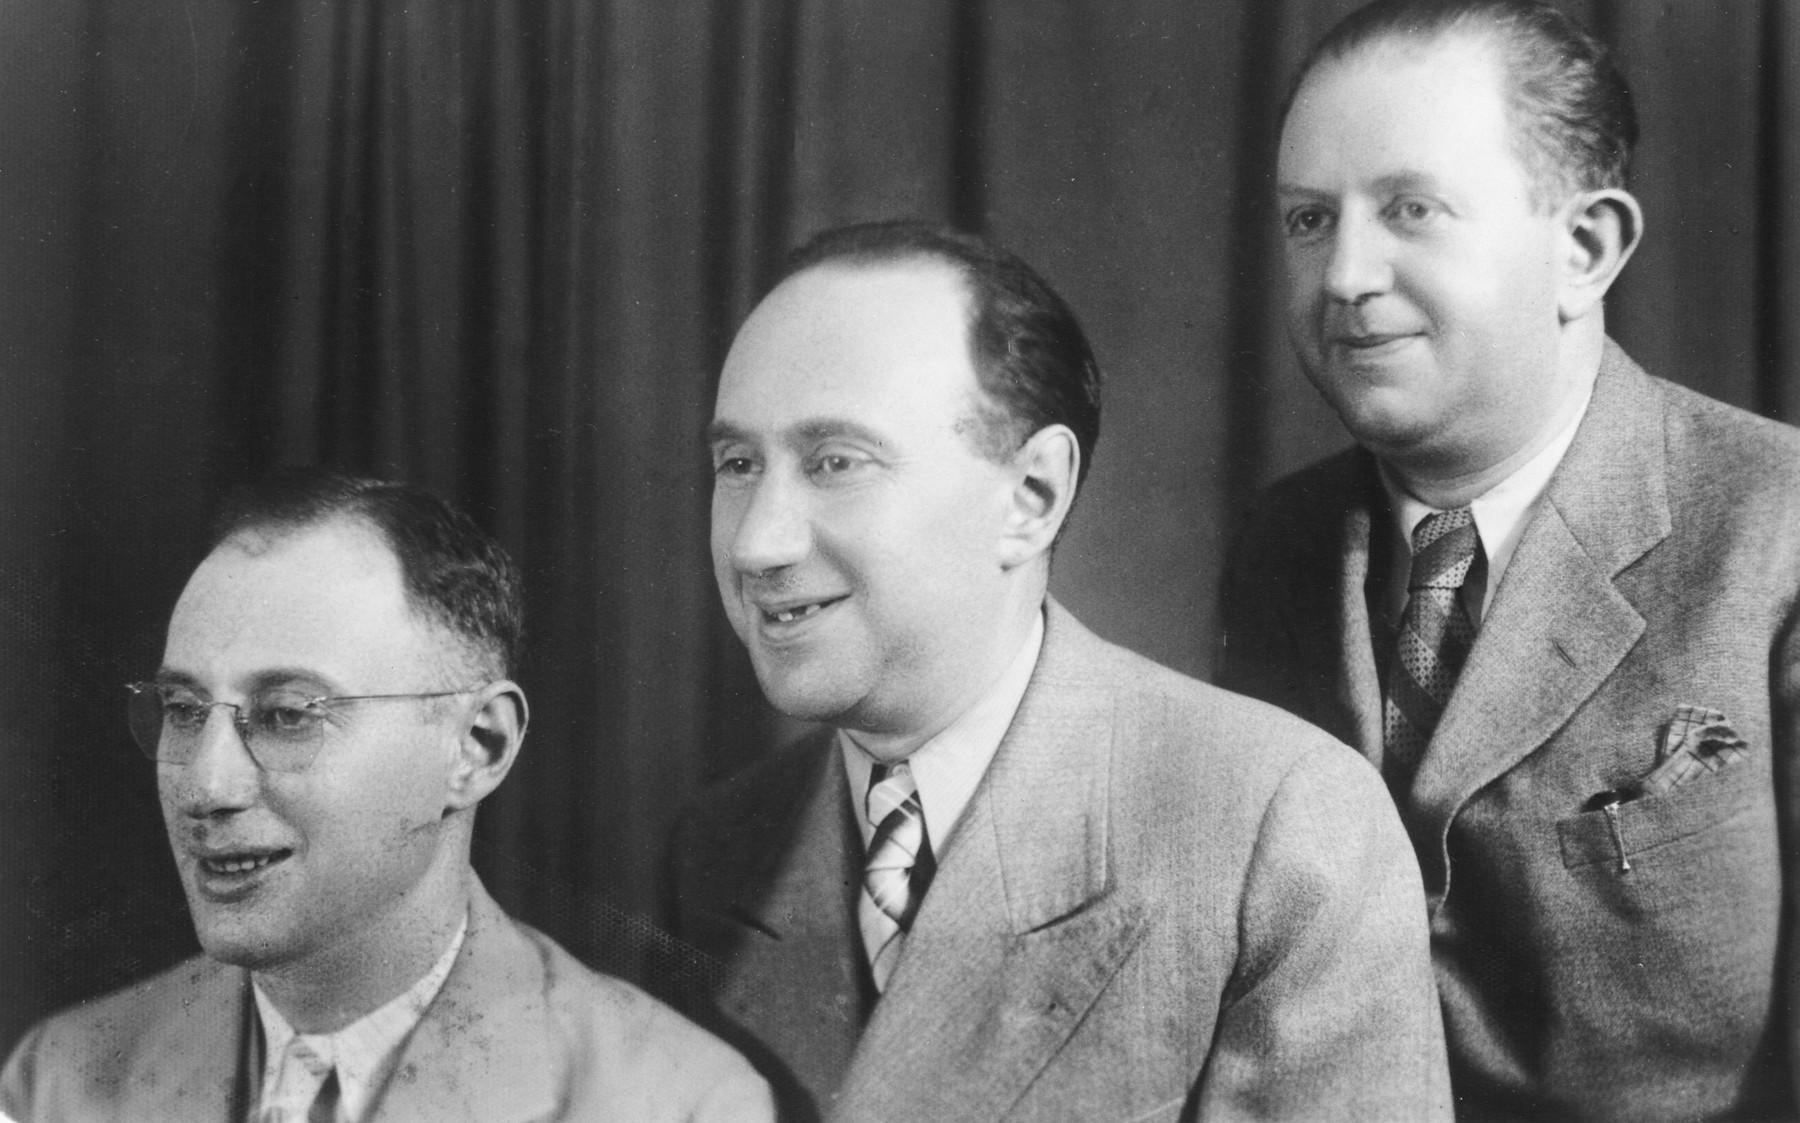 Prewar photograph of the three Levin brothers.  From left to tight are Max (who had immigrated to Canada and returned for a visit), Alex (Yehezkel) and Moshe.  Moshe later became the chief of the Kovno ghetto police and was among those executed at the Ninth Fort in March 1944 for his cooperation with the resistance.